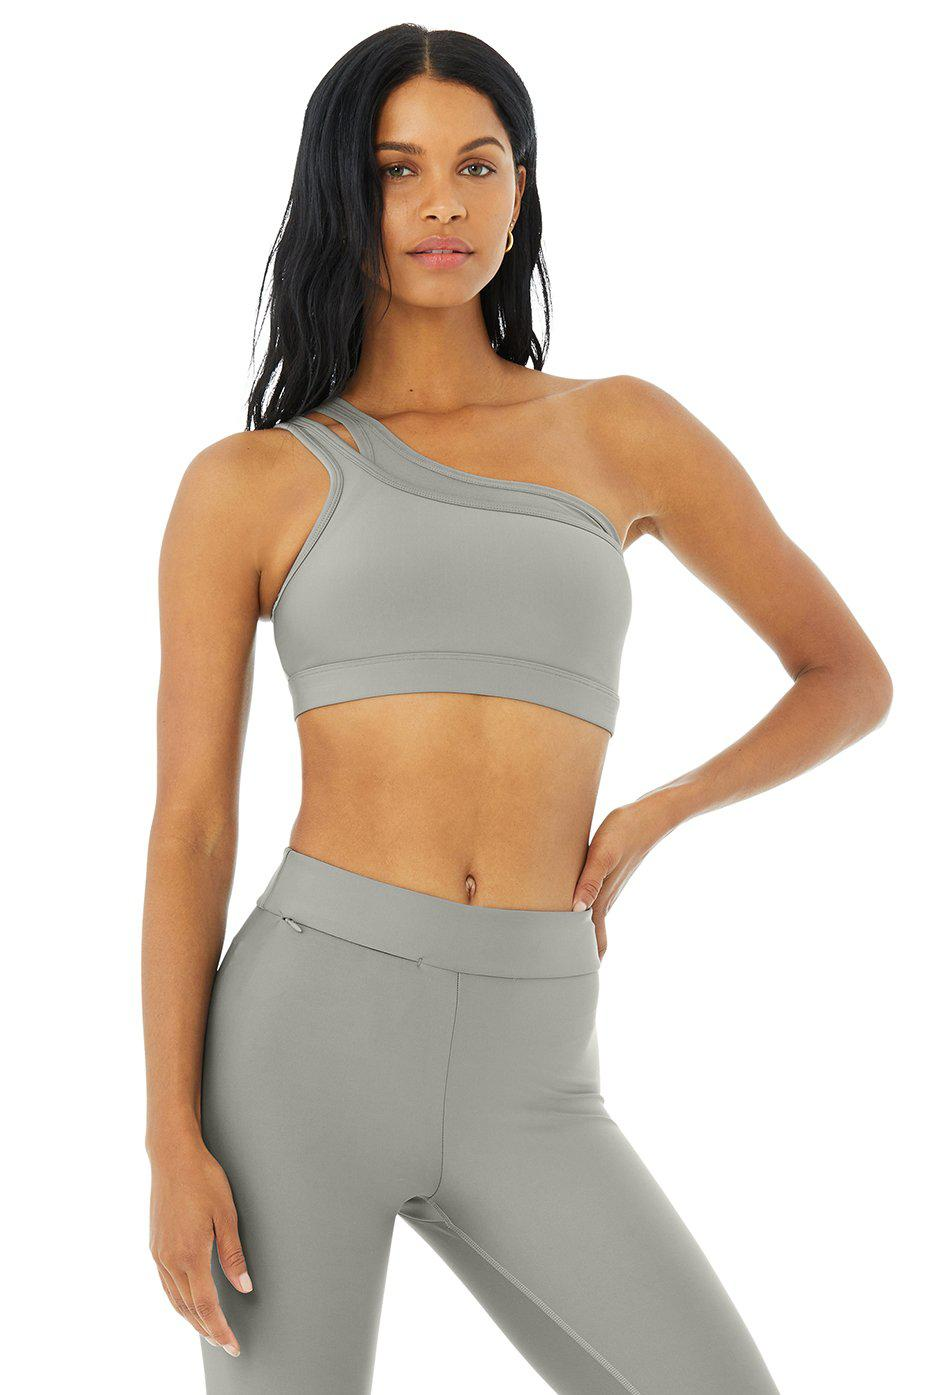 Airlift Excite Bra - Sterling